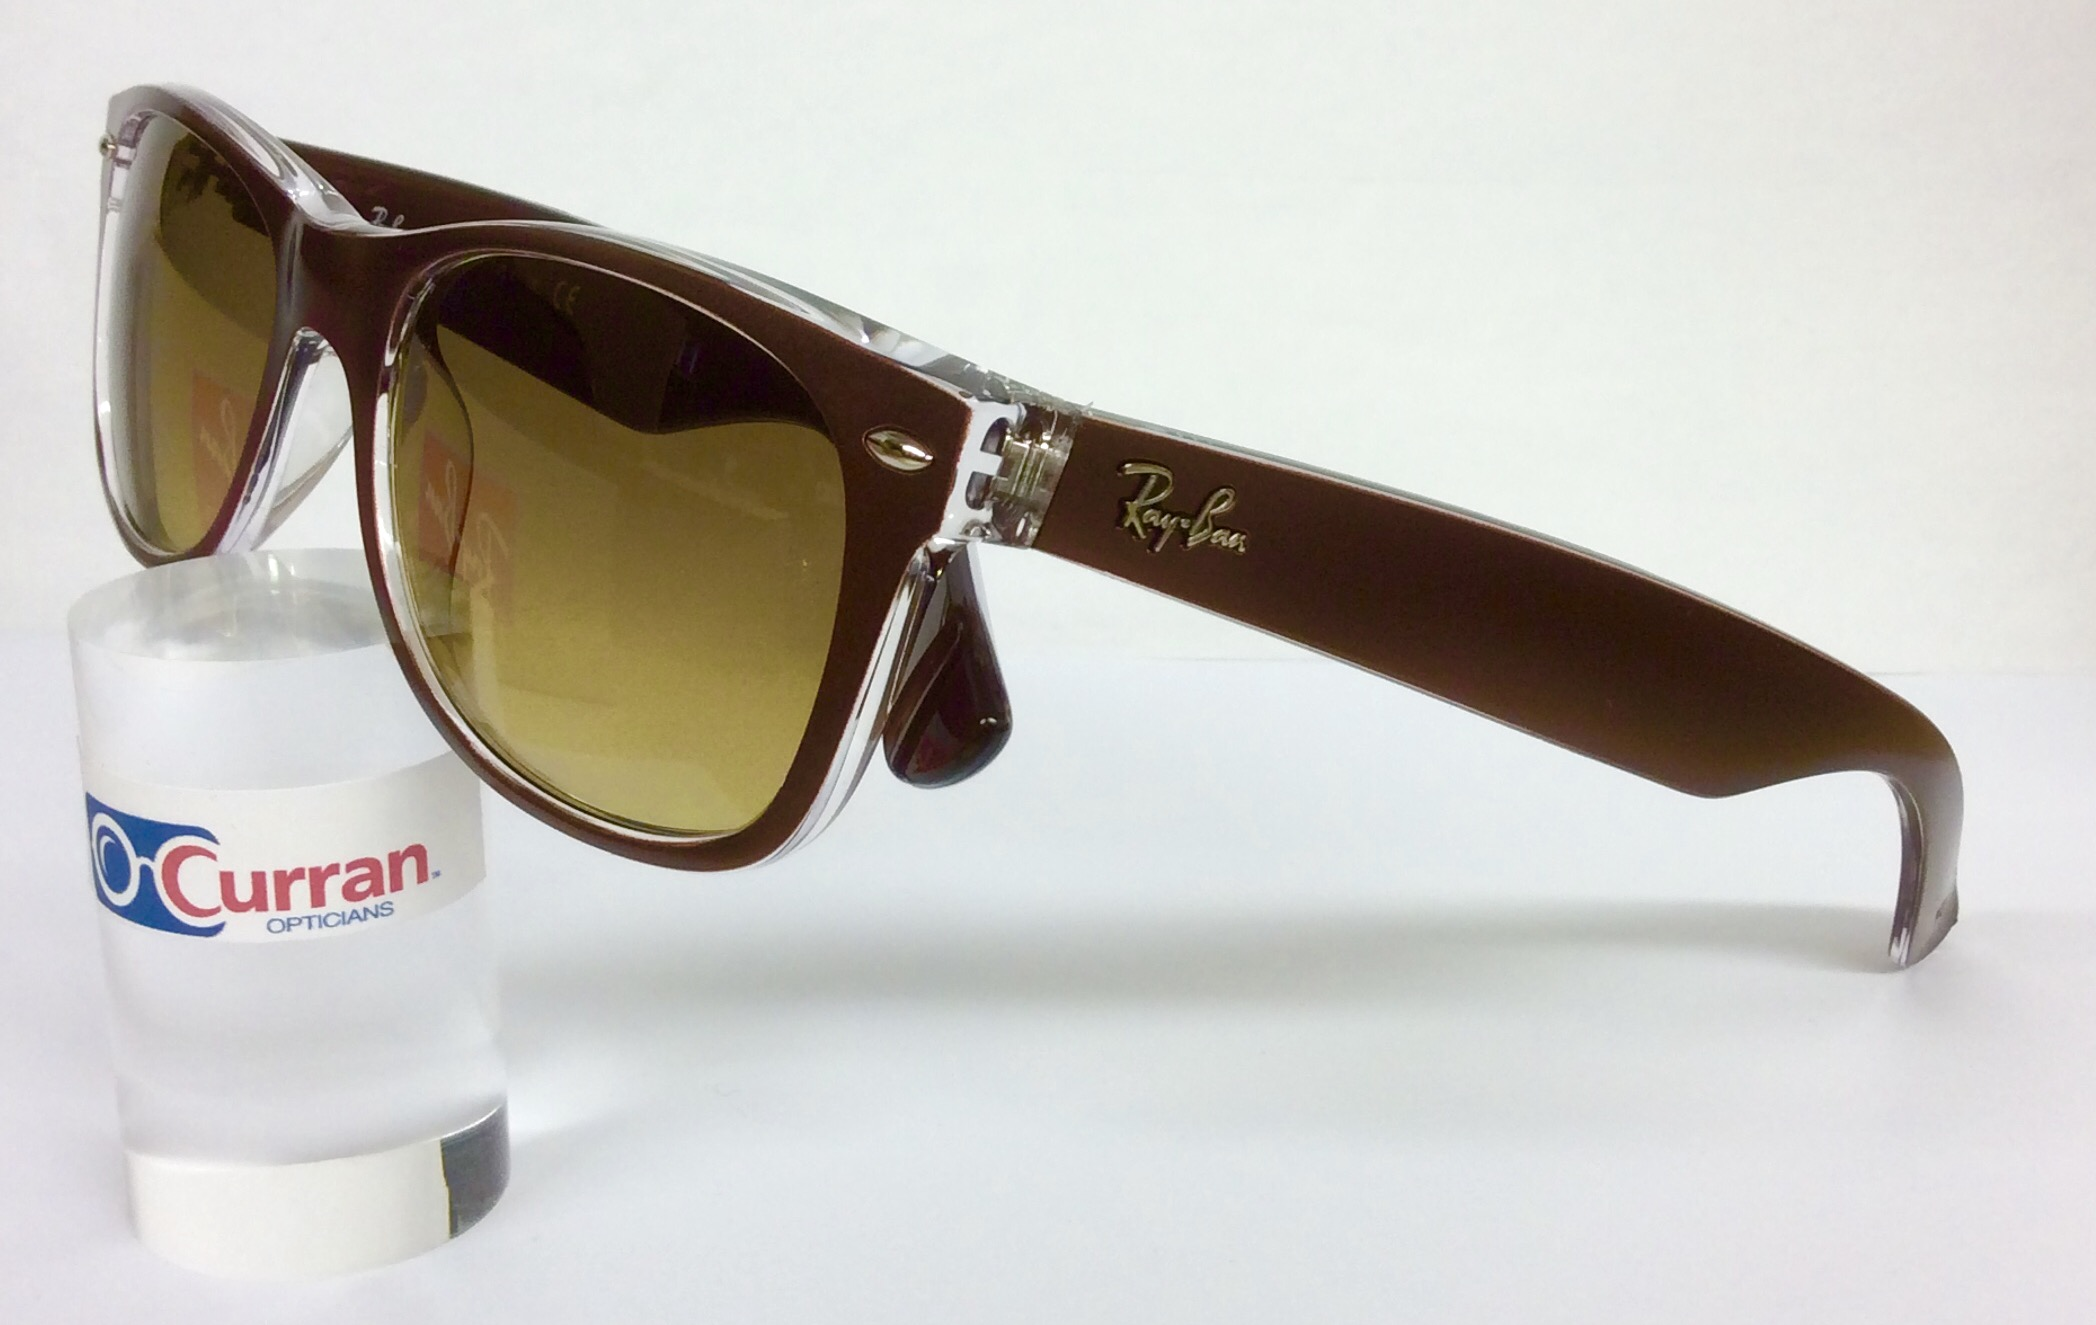 Ray-Ban RB 2132 New Wayfarer 614585 55 V4jSKE1fQ7